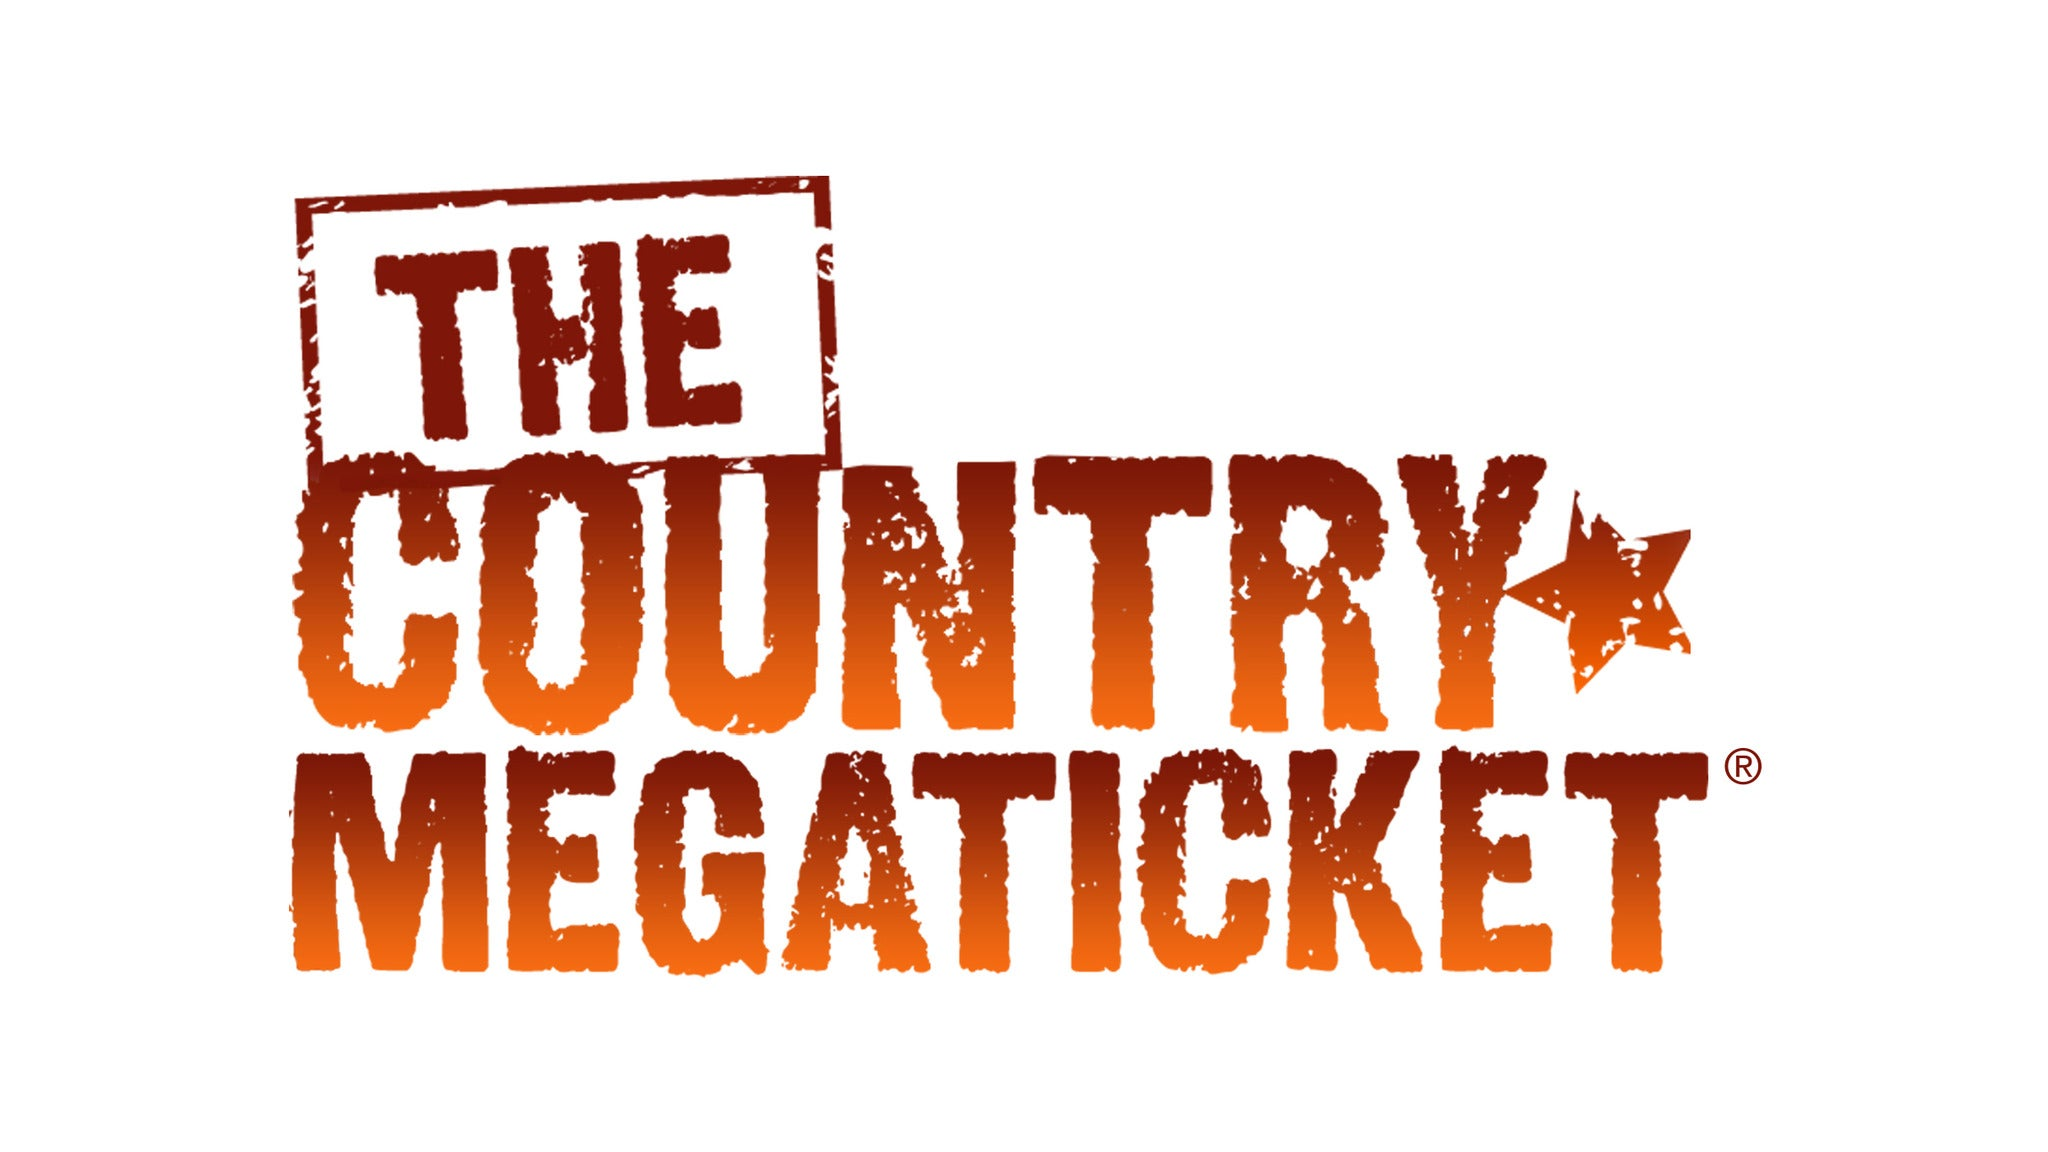 2019 Toyota Amphitheatre Country Megaticket Presented By Pennzoil